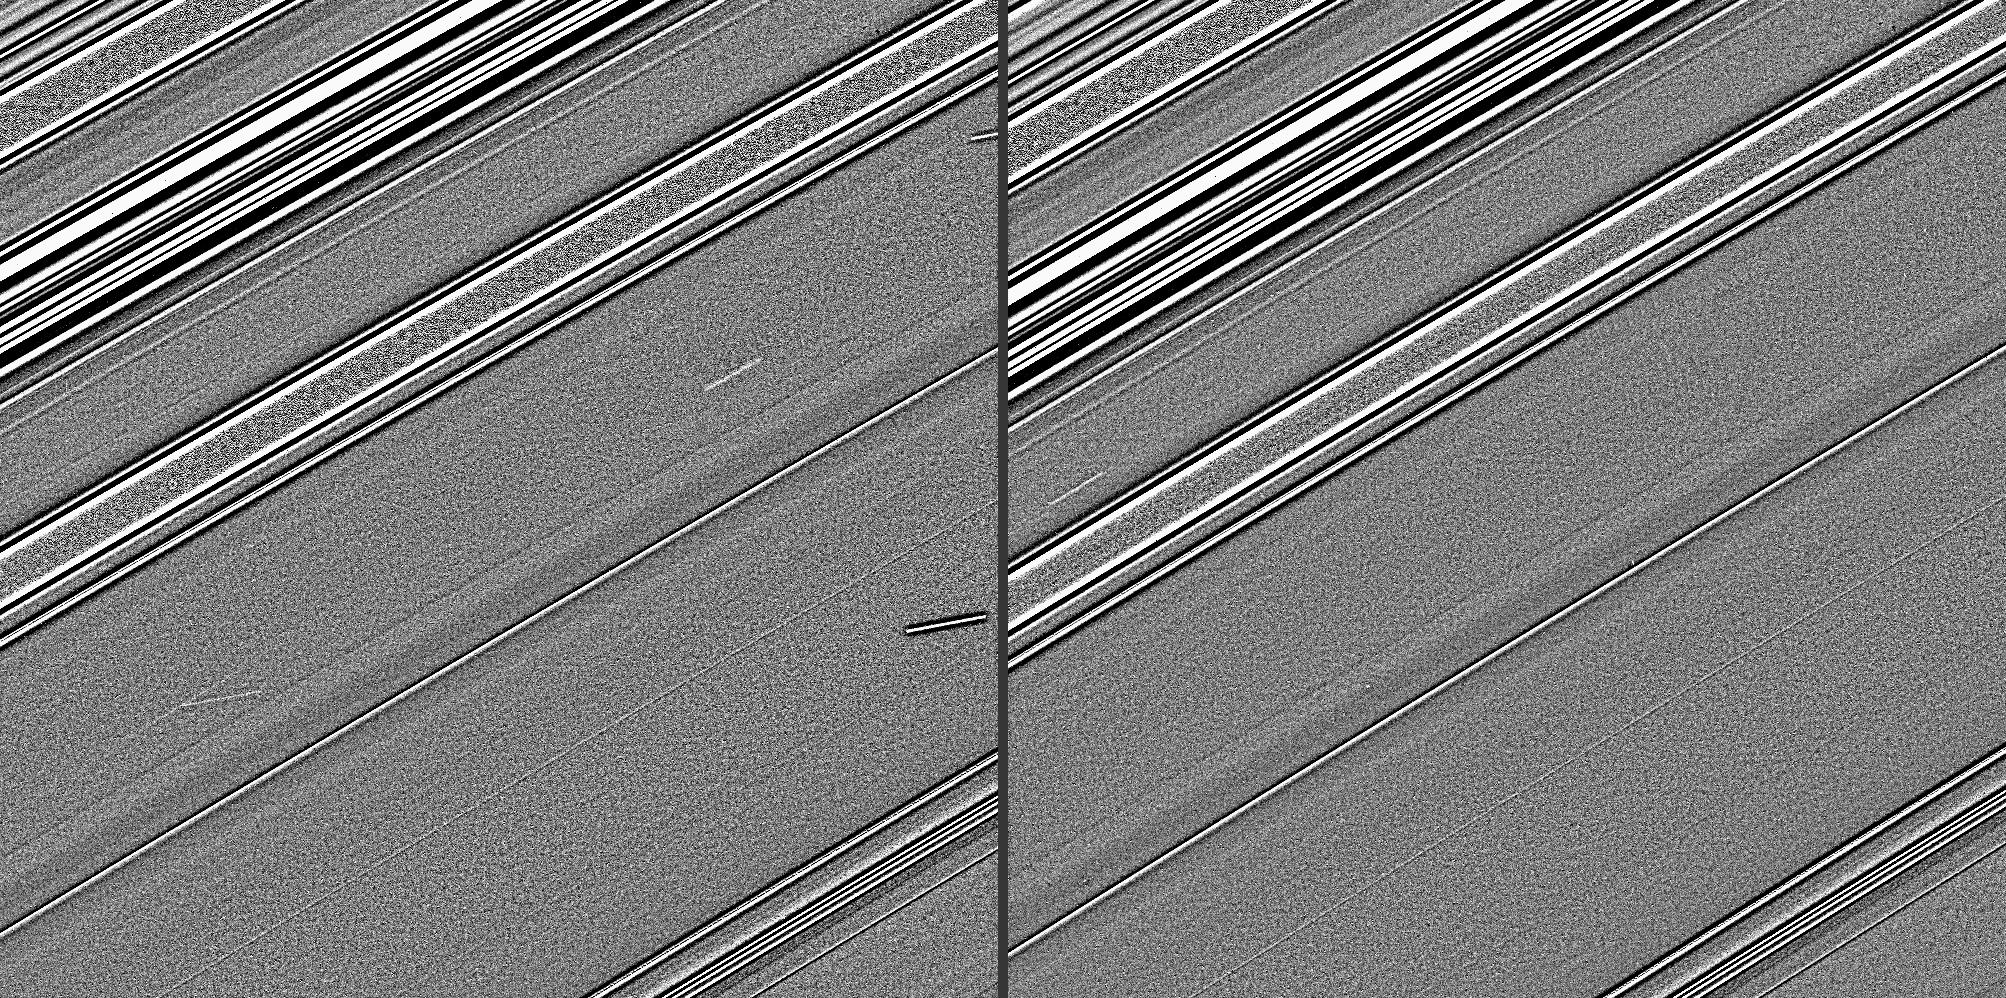 Streaks in Saturn's C ring